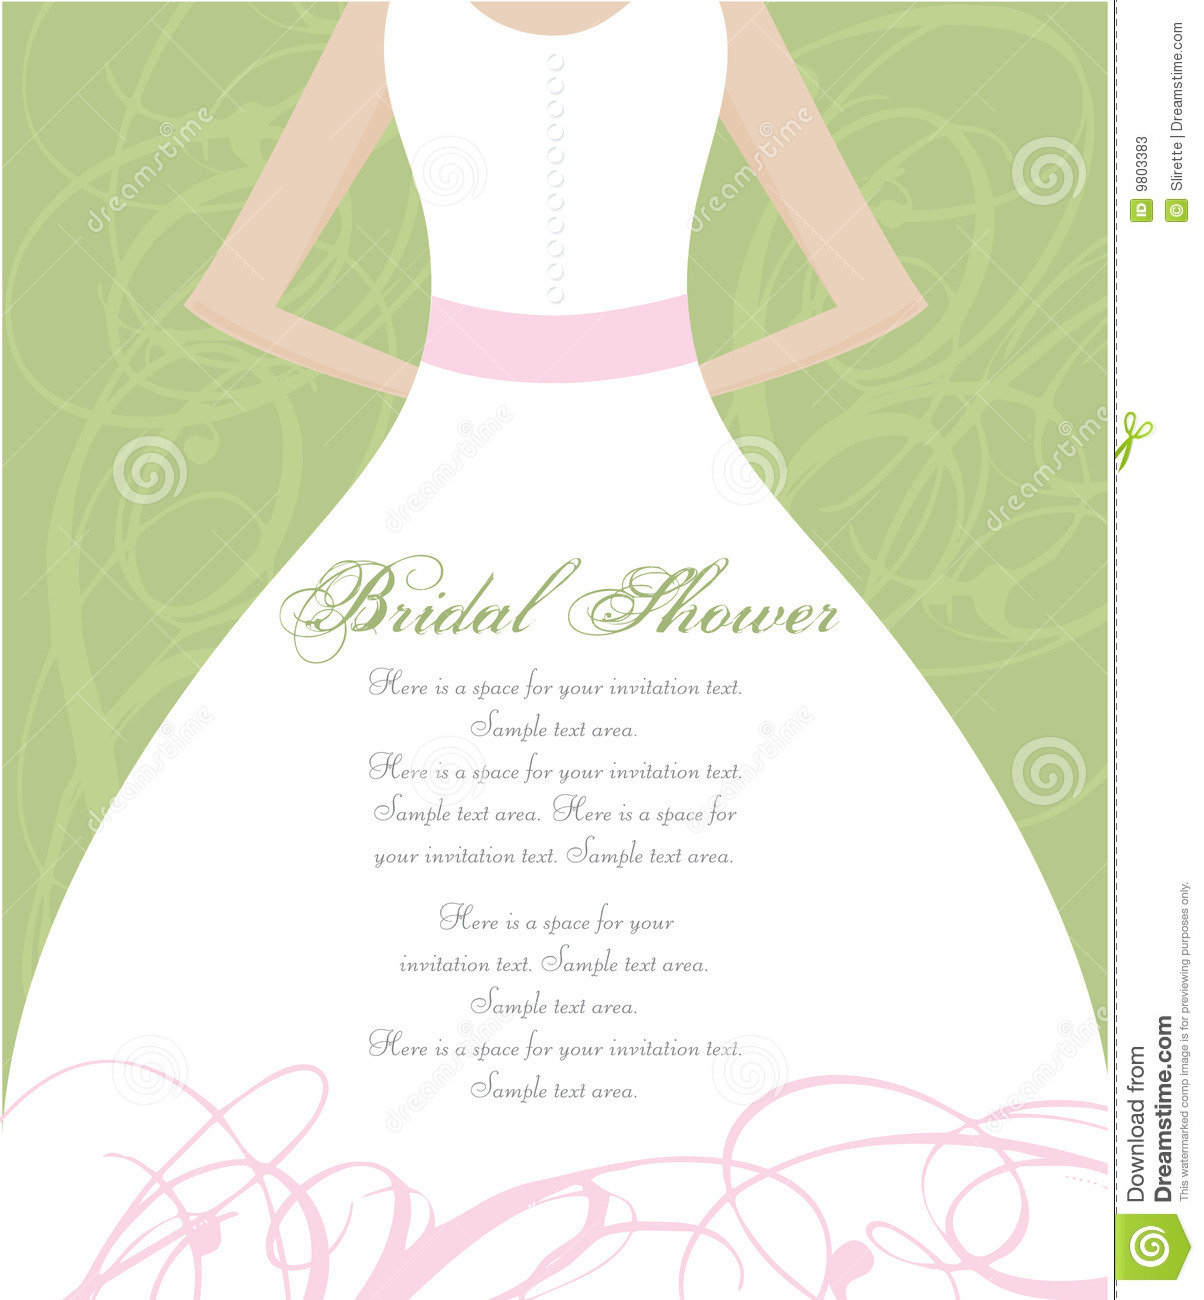 Bridal shower invitation stock vector illustration of invite 9803383 download bridal shower invitation stock vector illustration of invite 9803383 stopboris Gallery